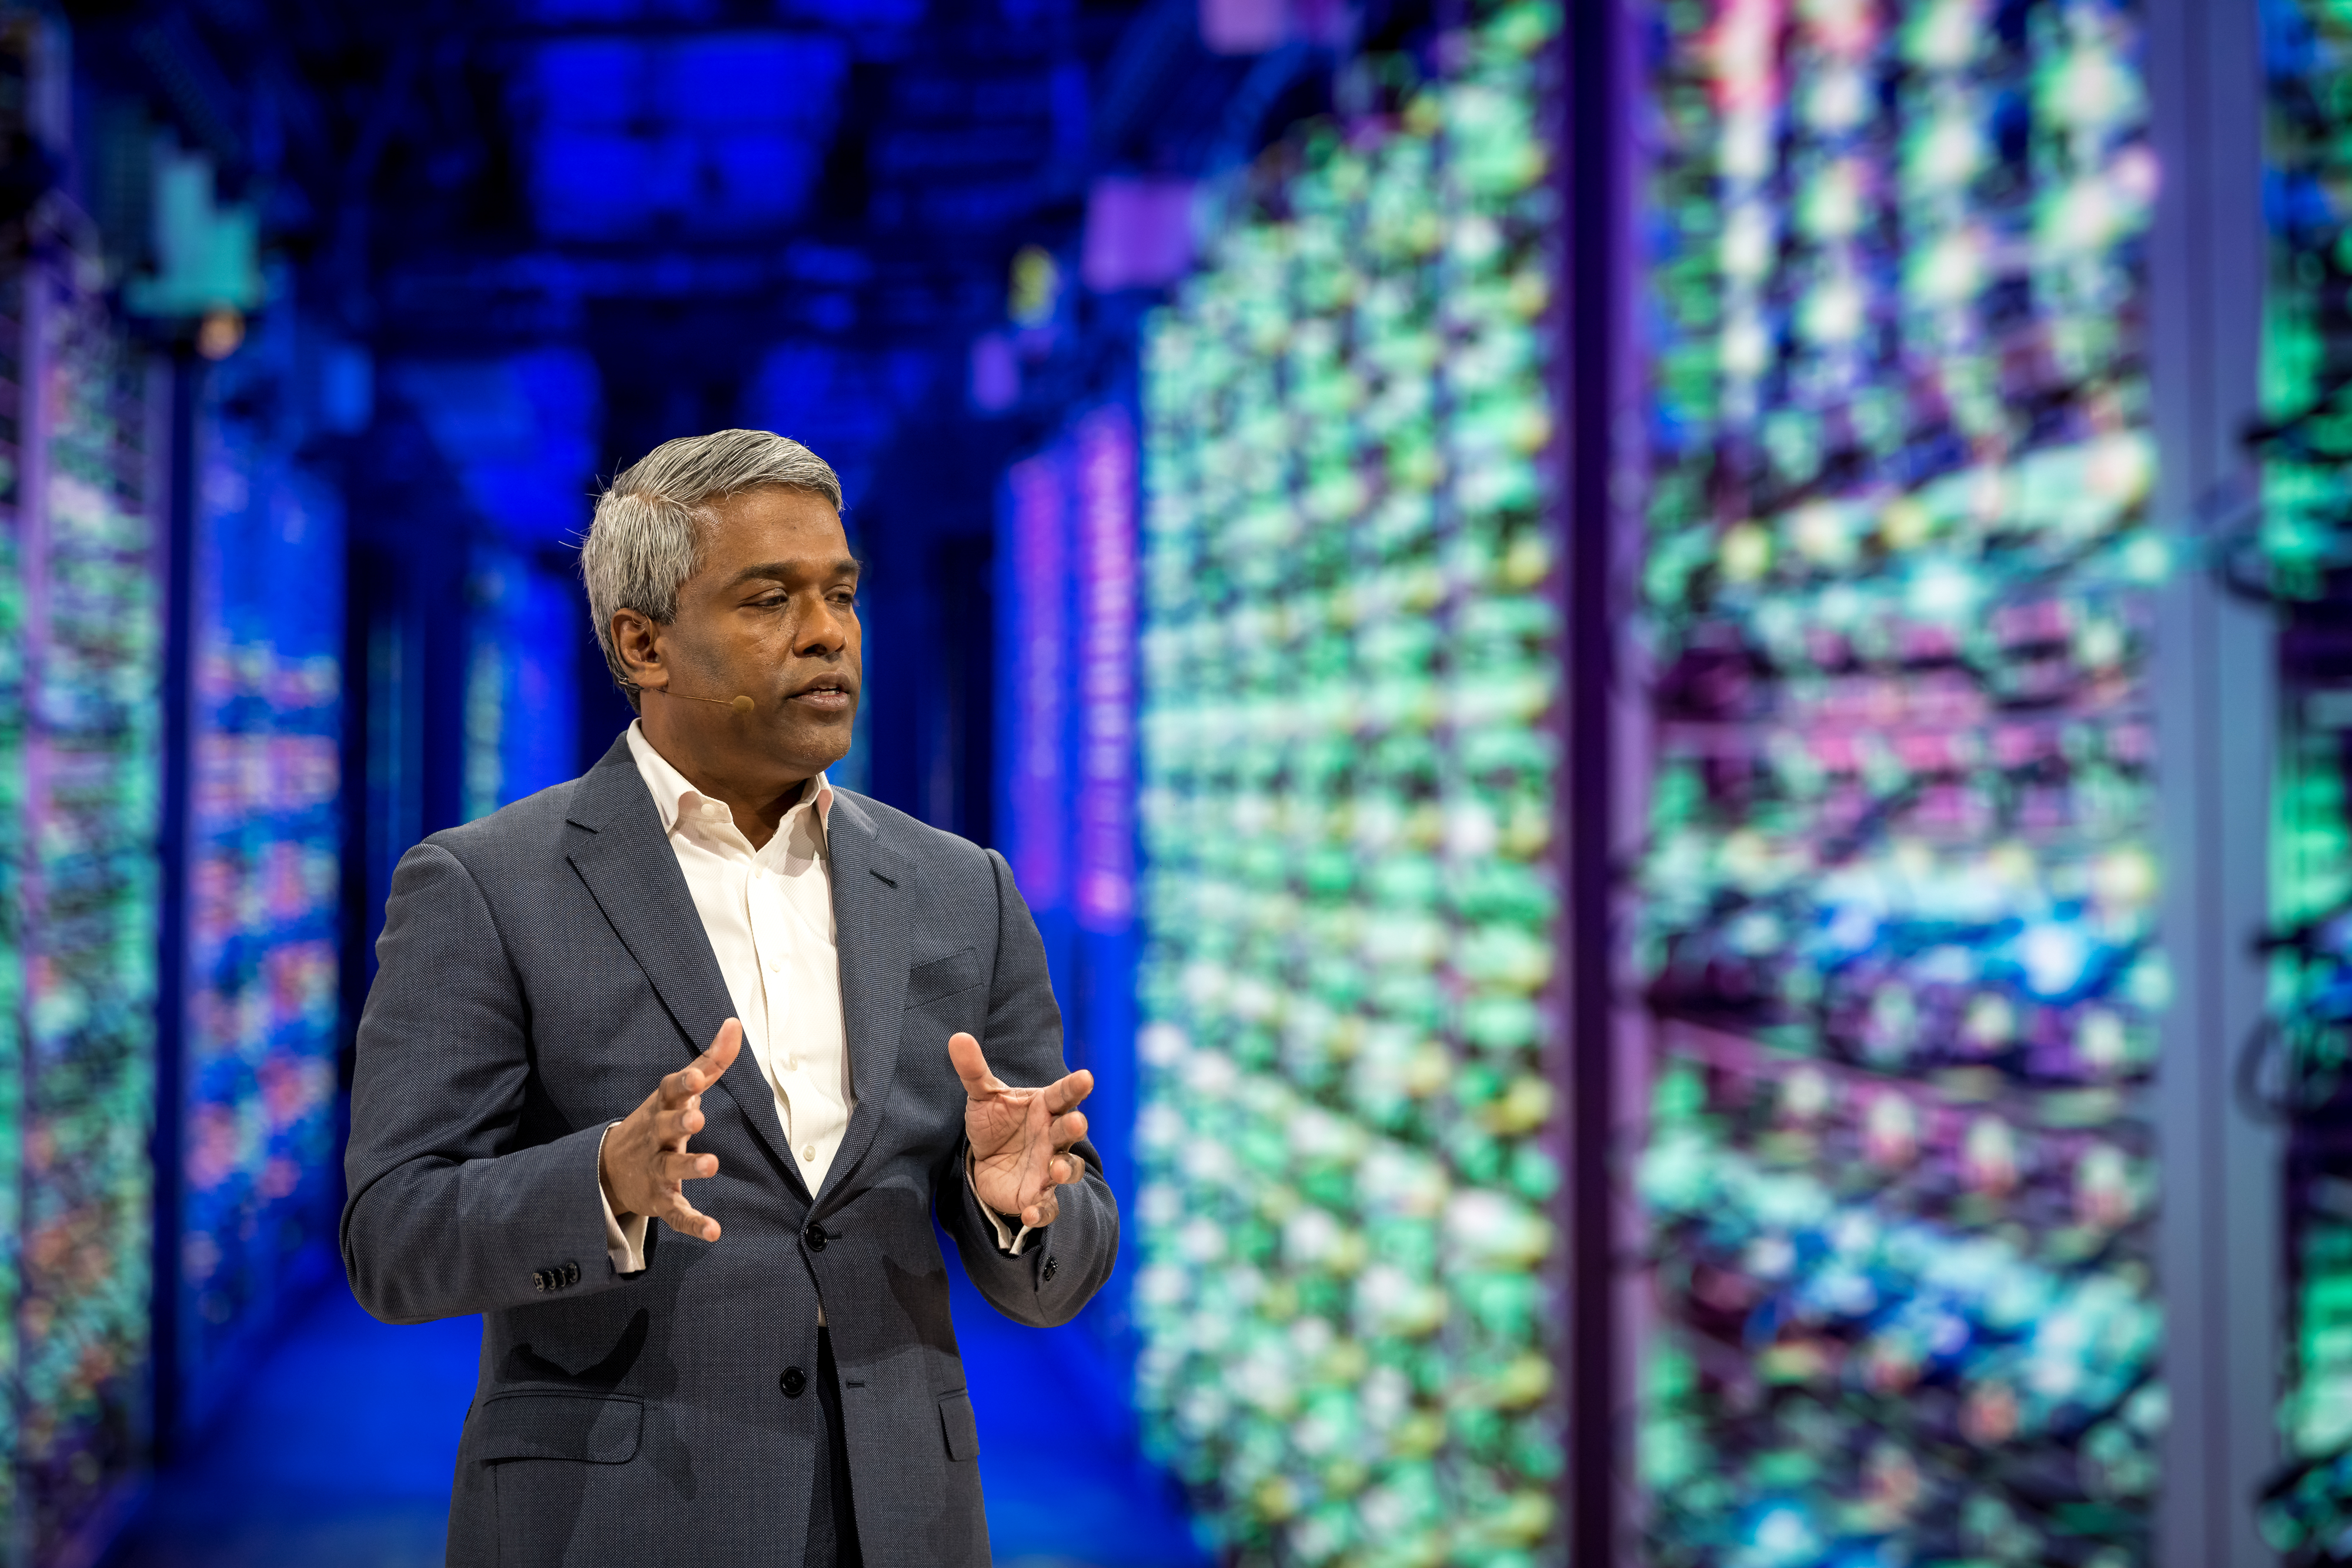 Thomas Kurian, CEO of Google Cloud, on-stage at Google Cloud Next '19